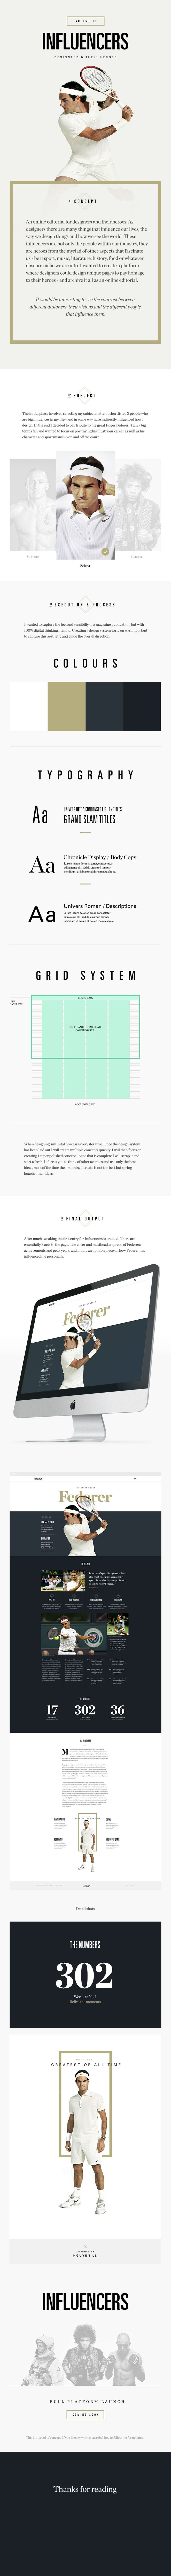 Influencers - Designers  their heroes by Nguyen Le